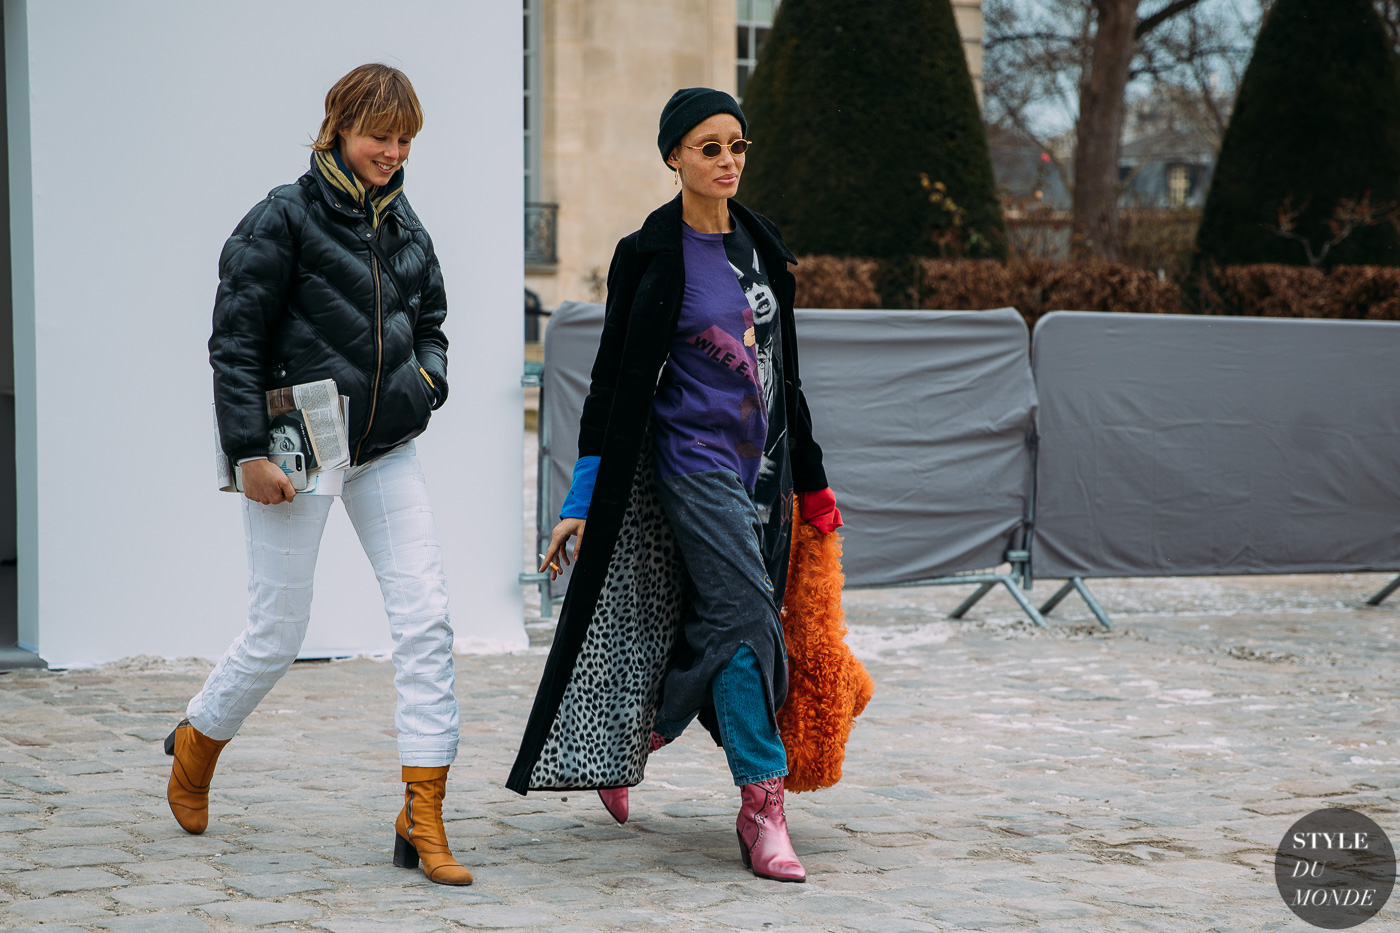 cdab82487869 Edie Campbell and Adwoa Aboah by STYLEDUMONDE Street Style Fashion  Photography FW18 20180227 48A5849 ...